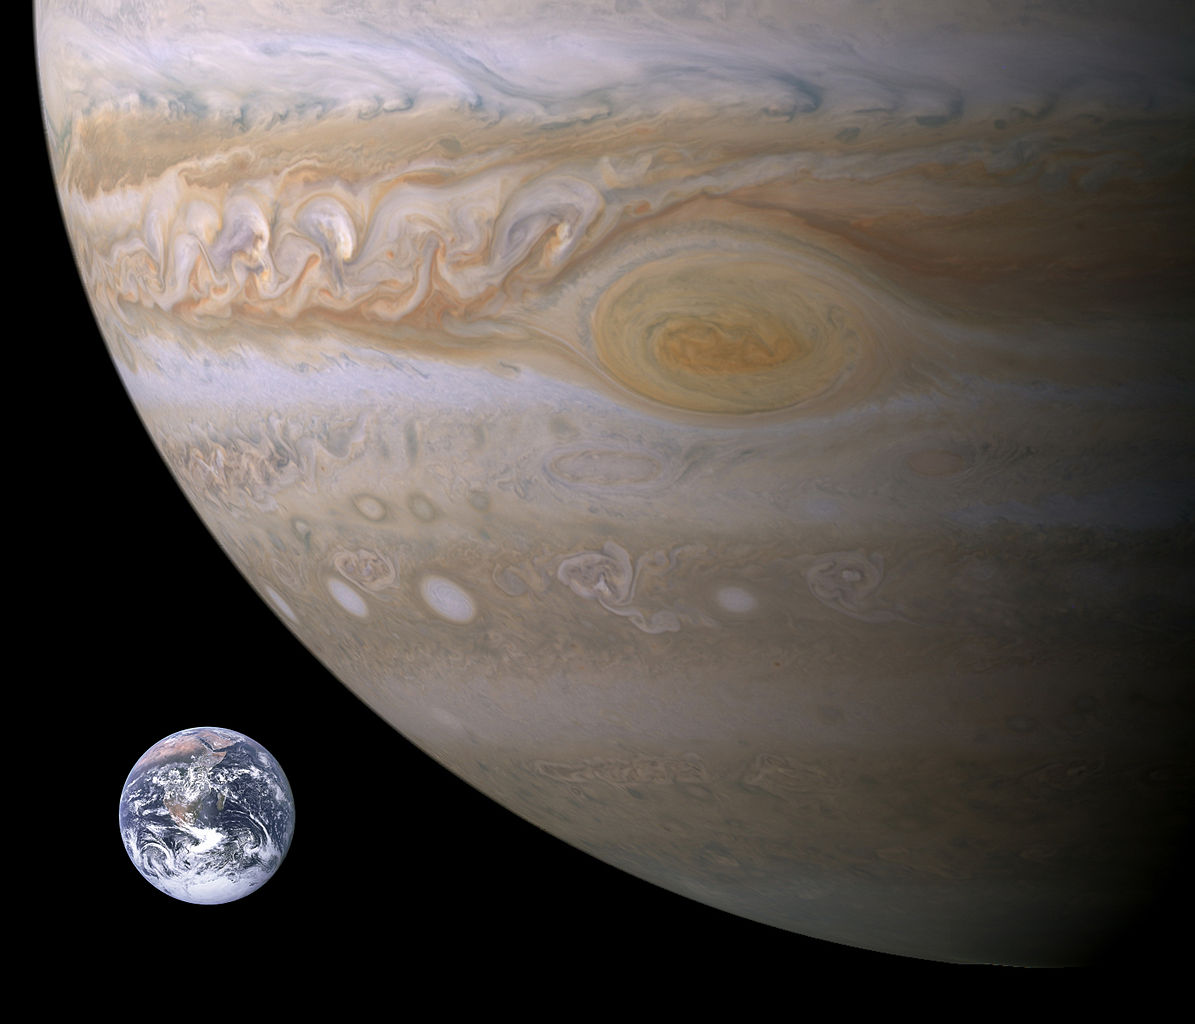 Jupiter-Earth comparison by NASA